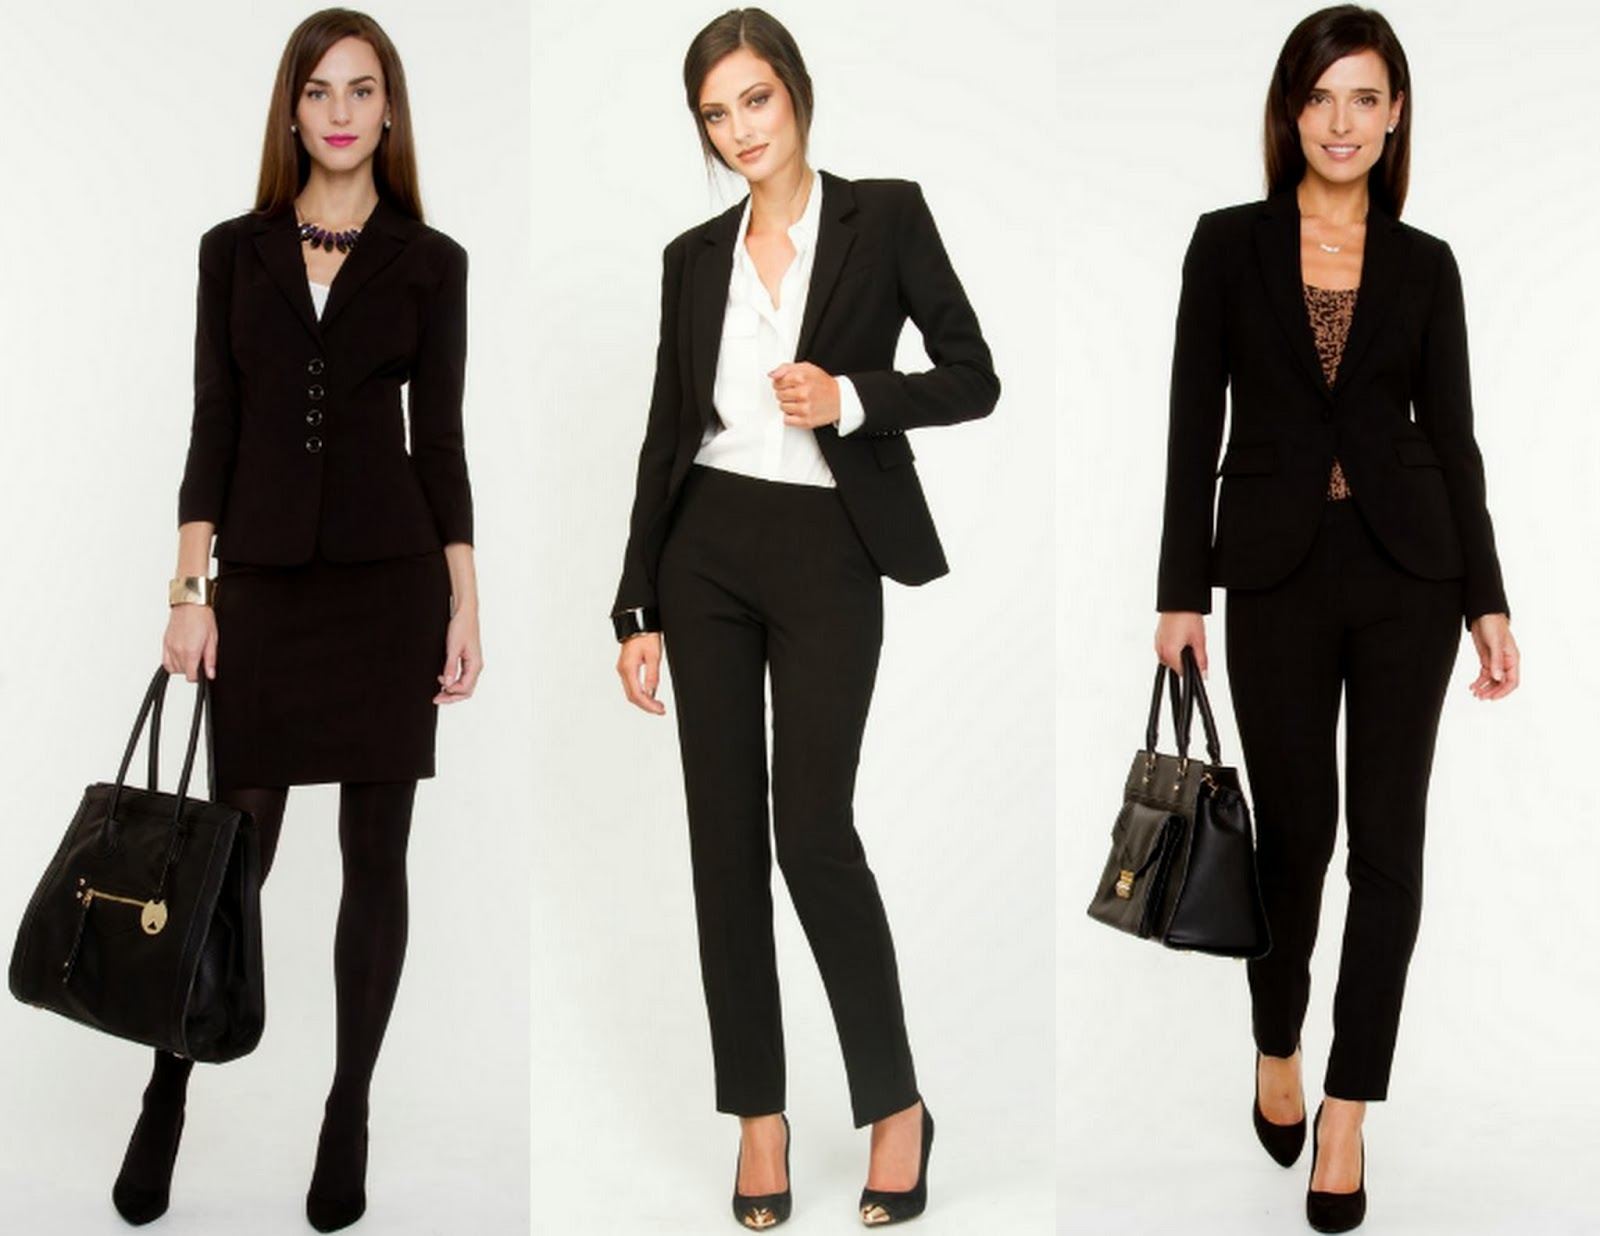 Foolproof Interview Outfit Ideas - Outfit Ideas HQ